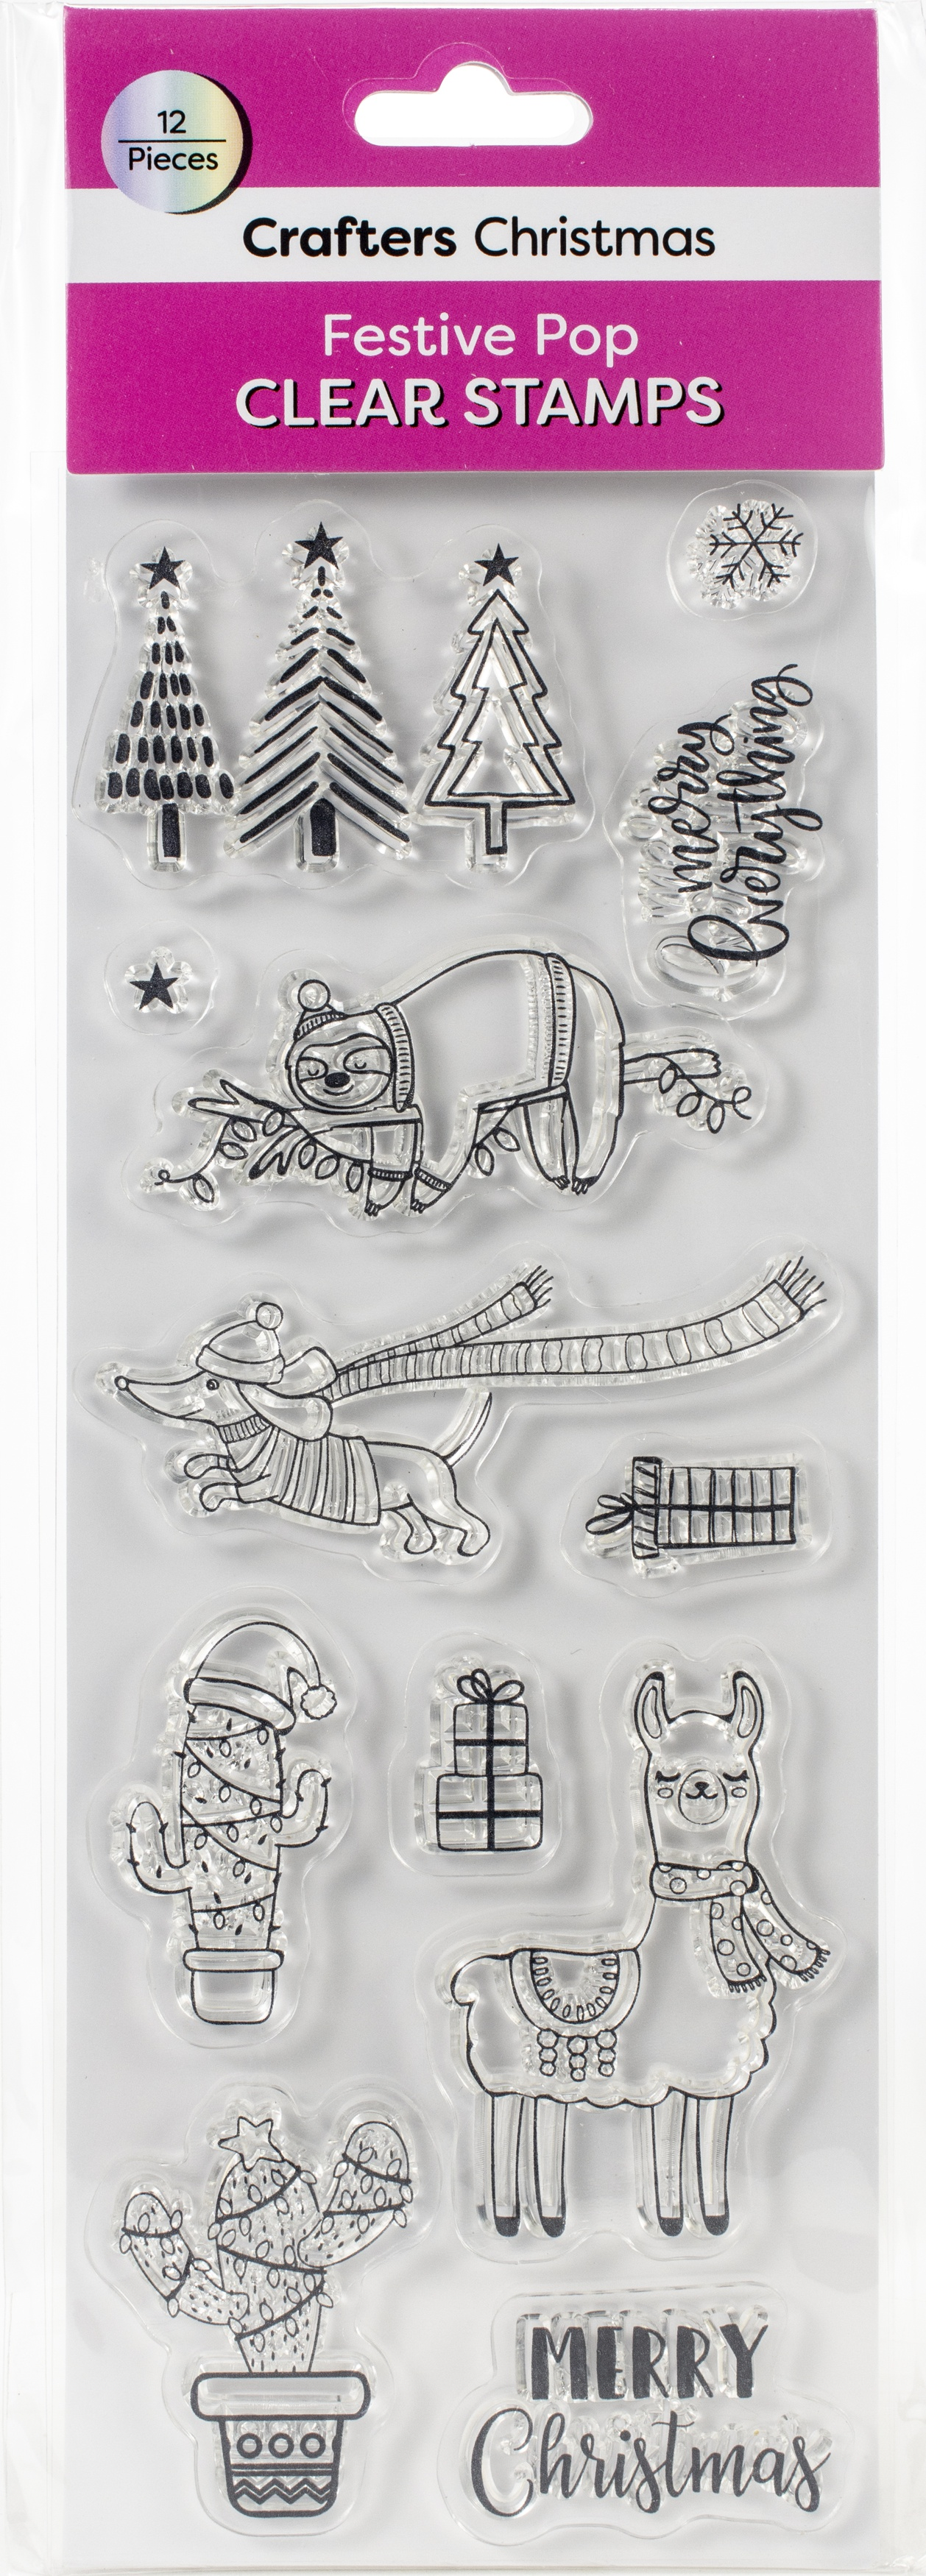 Crafters Christmas Clear Stamps-Festive Pop Icons